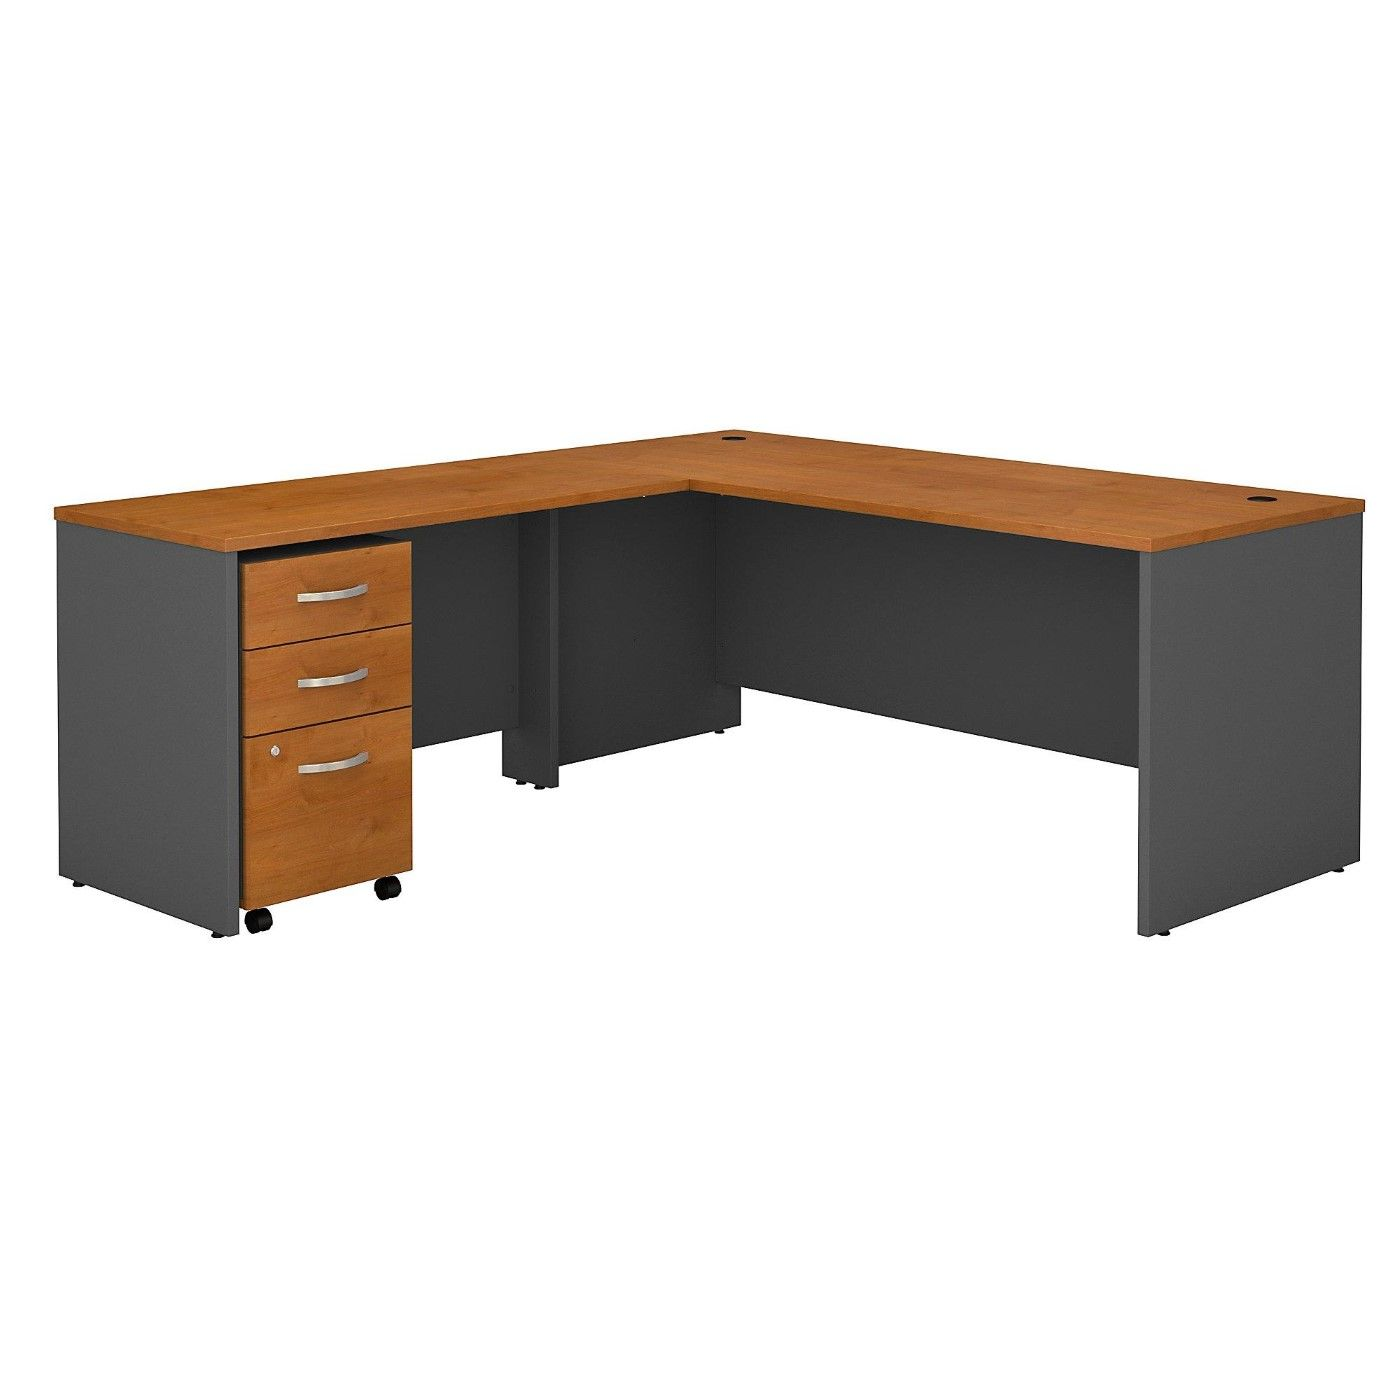 <font color=#c60><b>BUSH BUSINESS FURNITURE SERIES C 72W L SHAPED DESK WITH 48W RETURN AND MOBILE FILE CABINET. FREE SHIPPING</font></b>